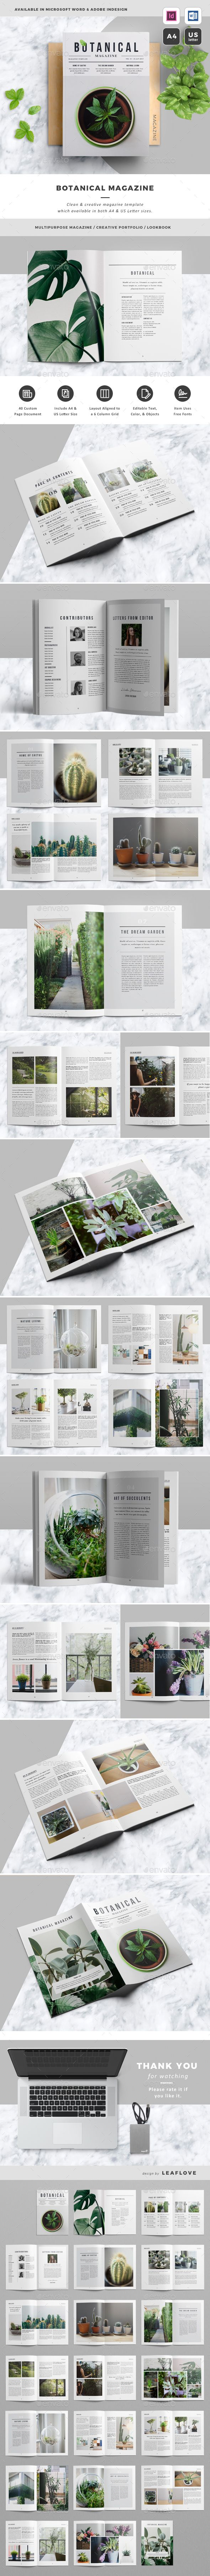 Magazine — InDesign INDD #agency #travel • Download ➝ https://graphicriver.net/item/magazine/19260192?ref=pxcr